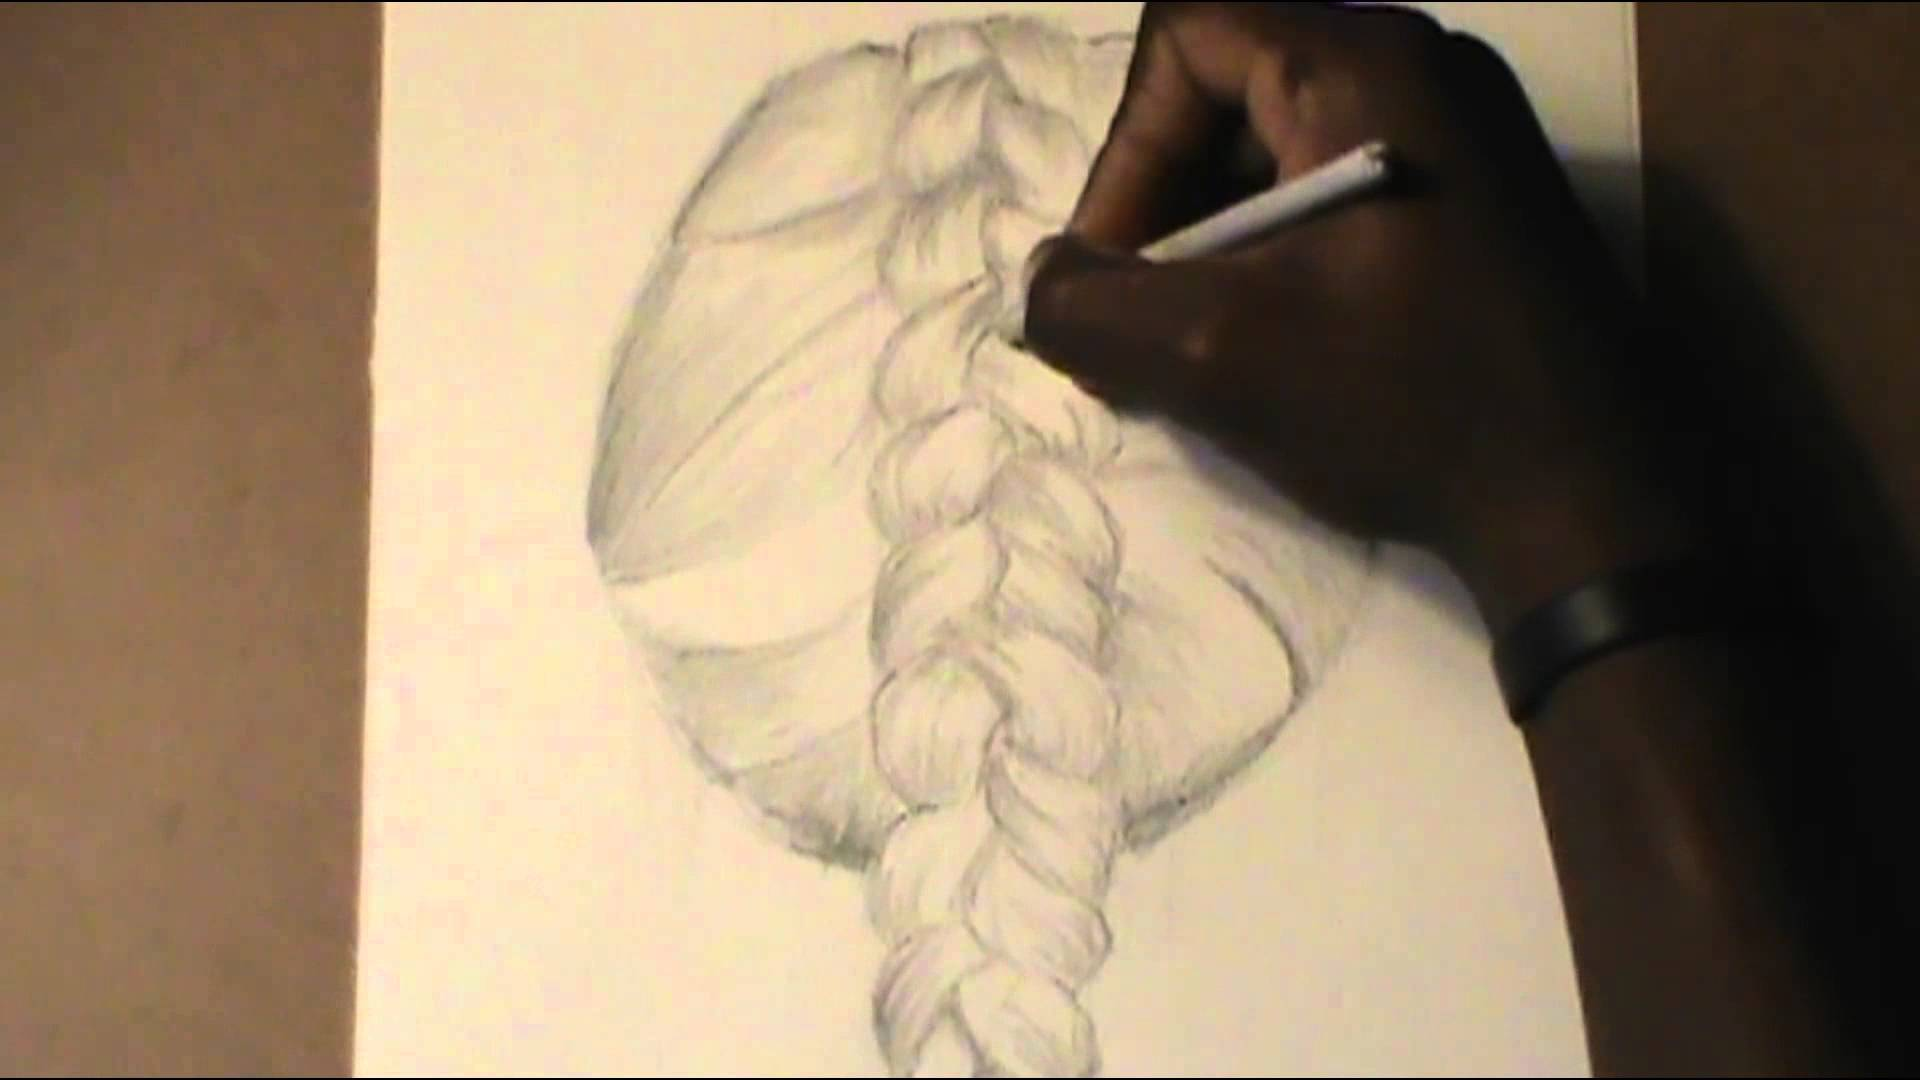 Drawn braid binibining Hair Drawing Hair Step: by